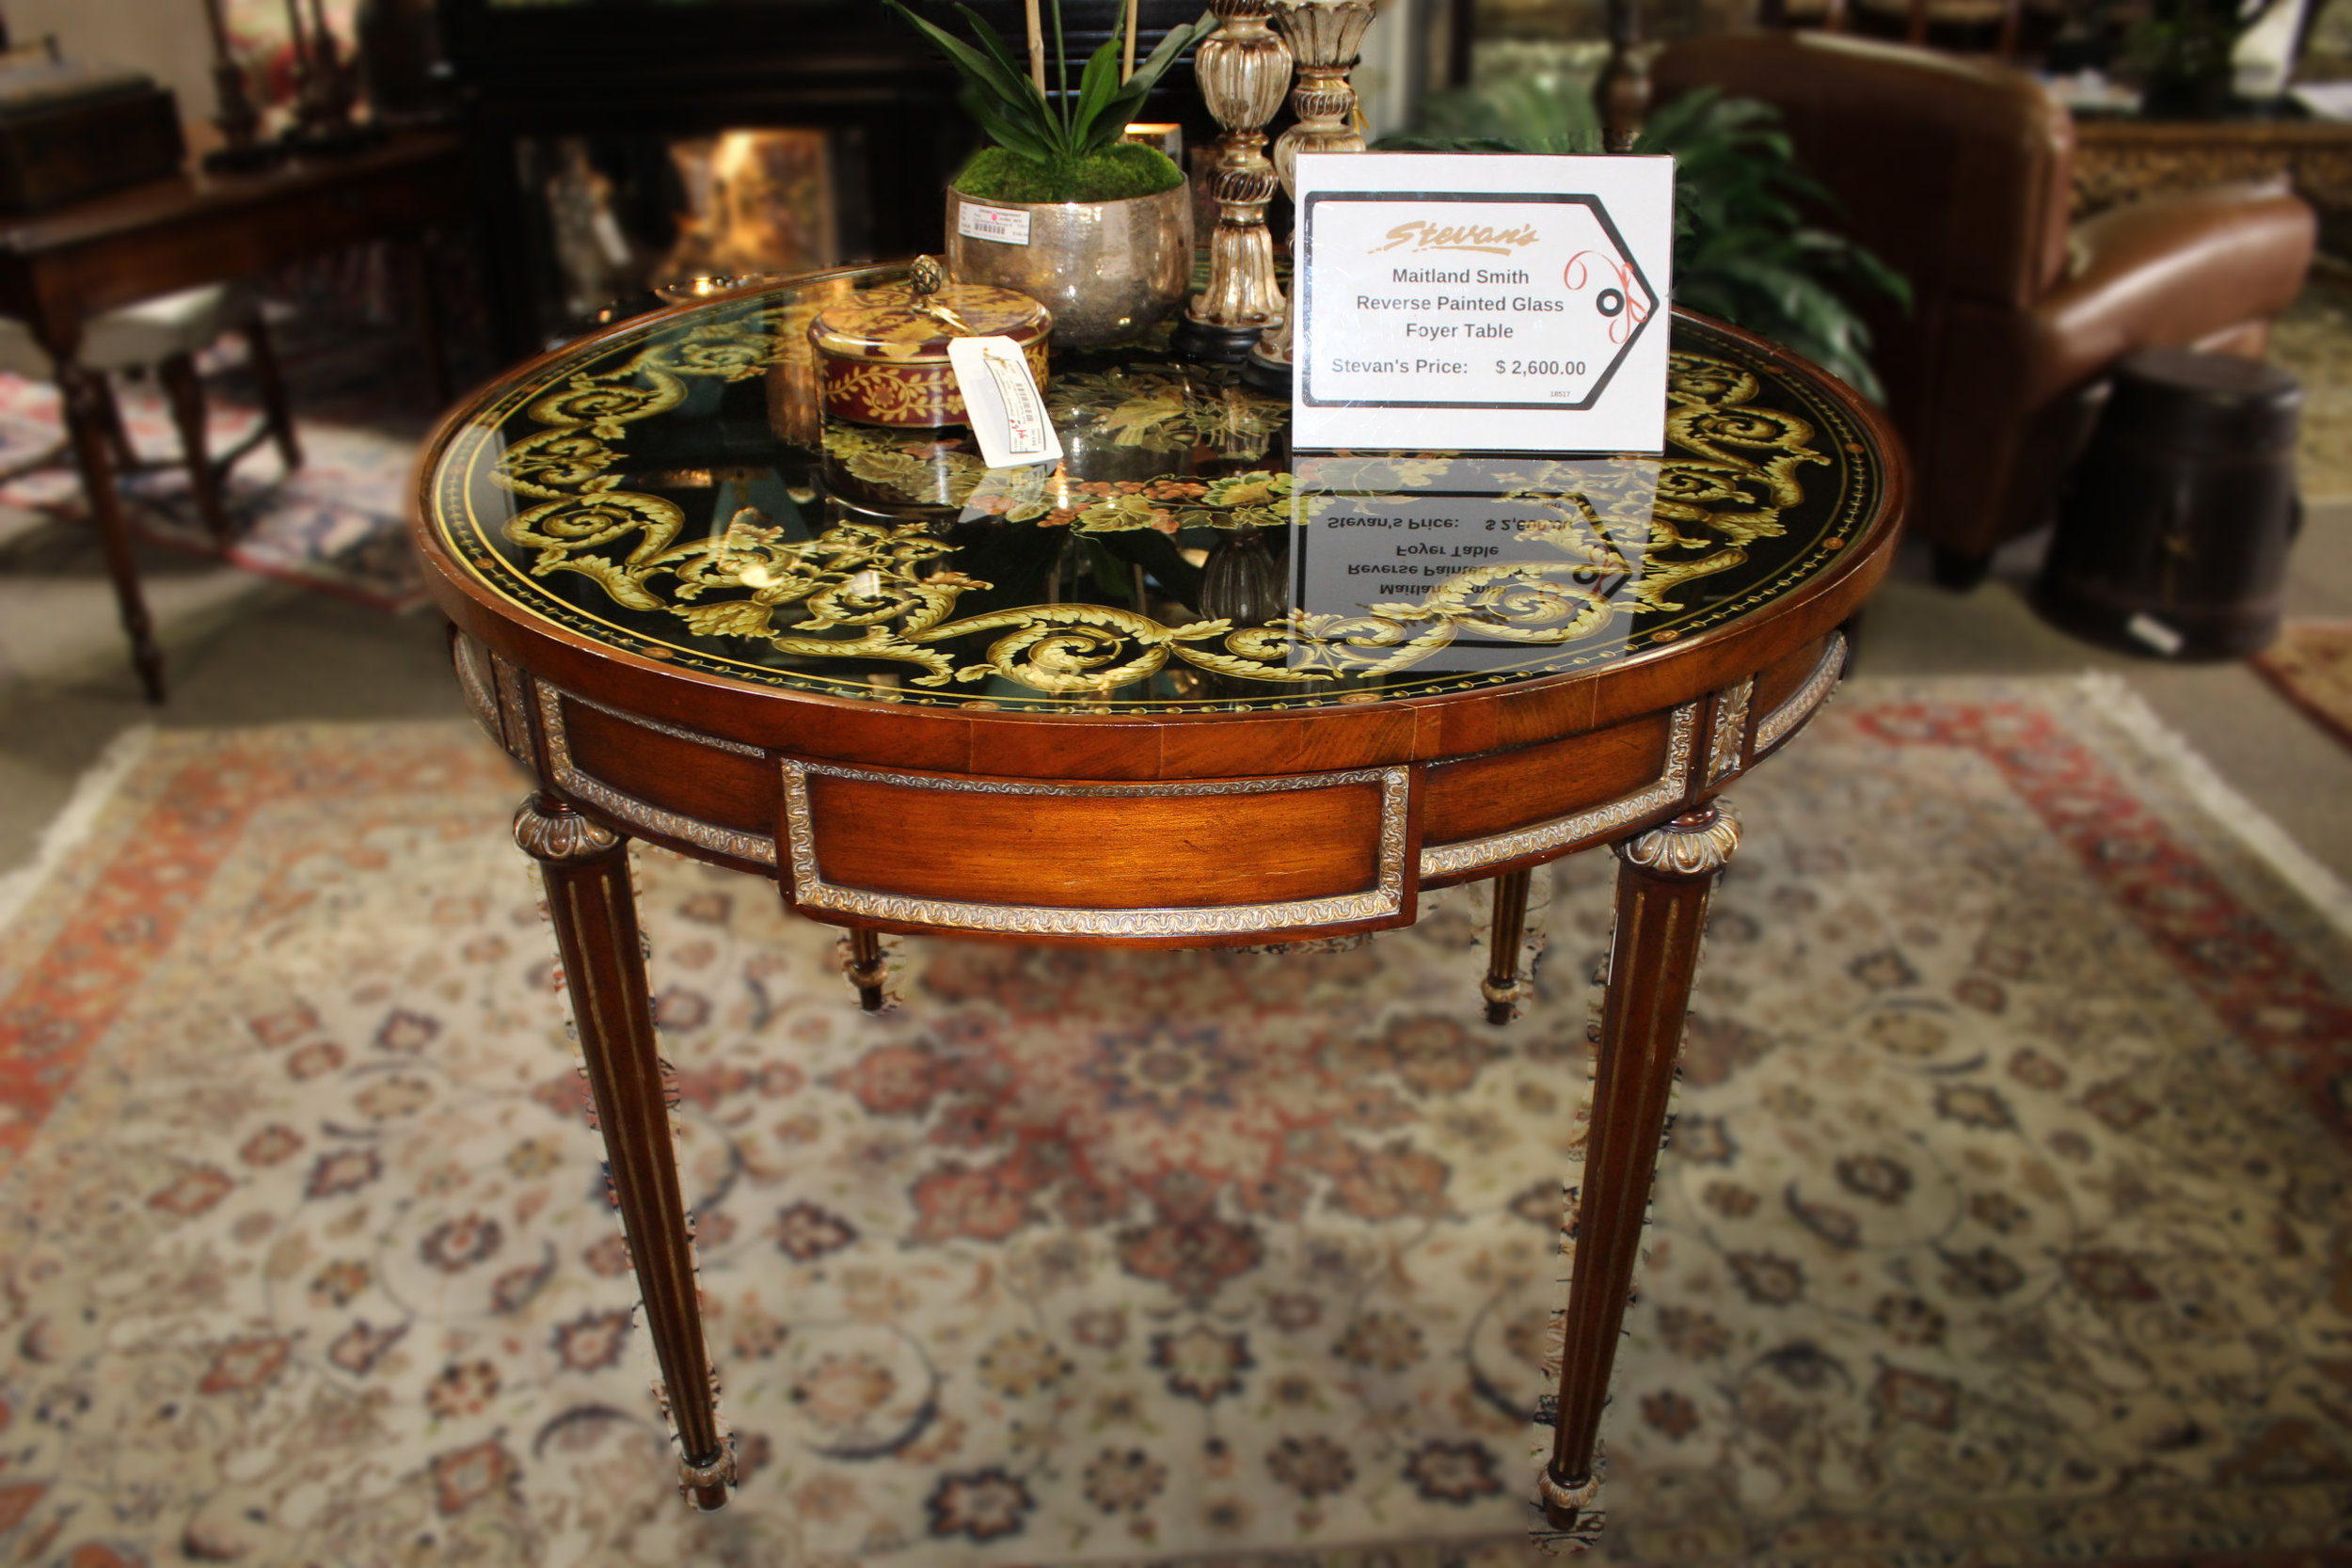 Maitland Smith Reverse Painted Glass Foyer Table